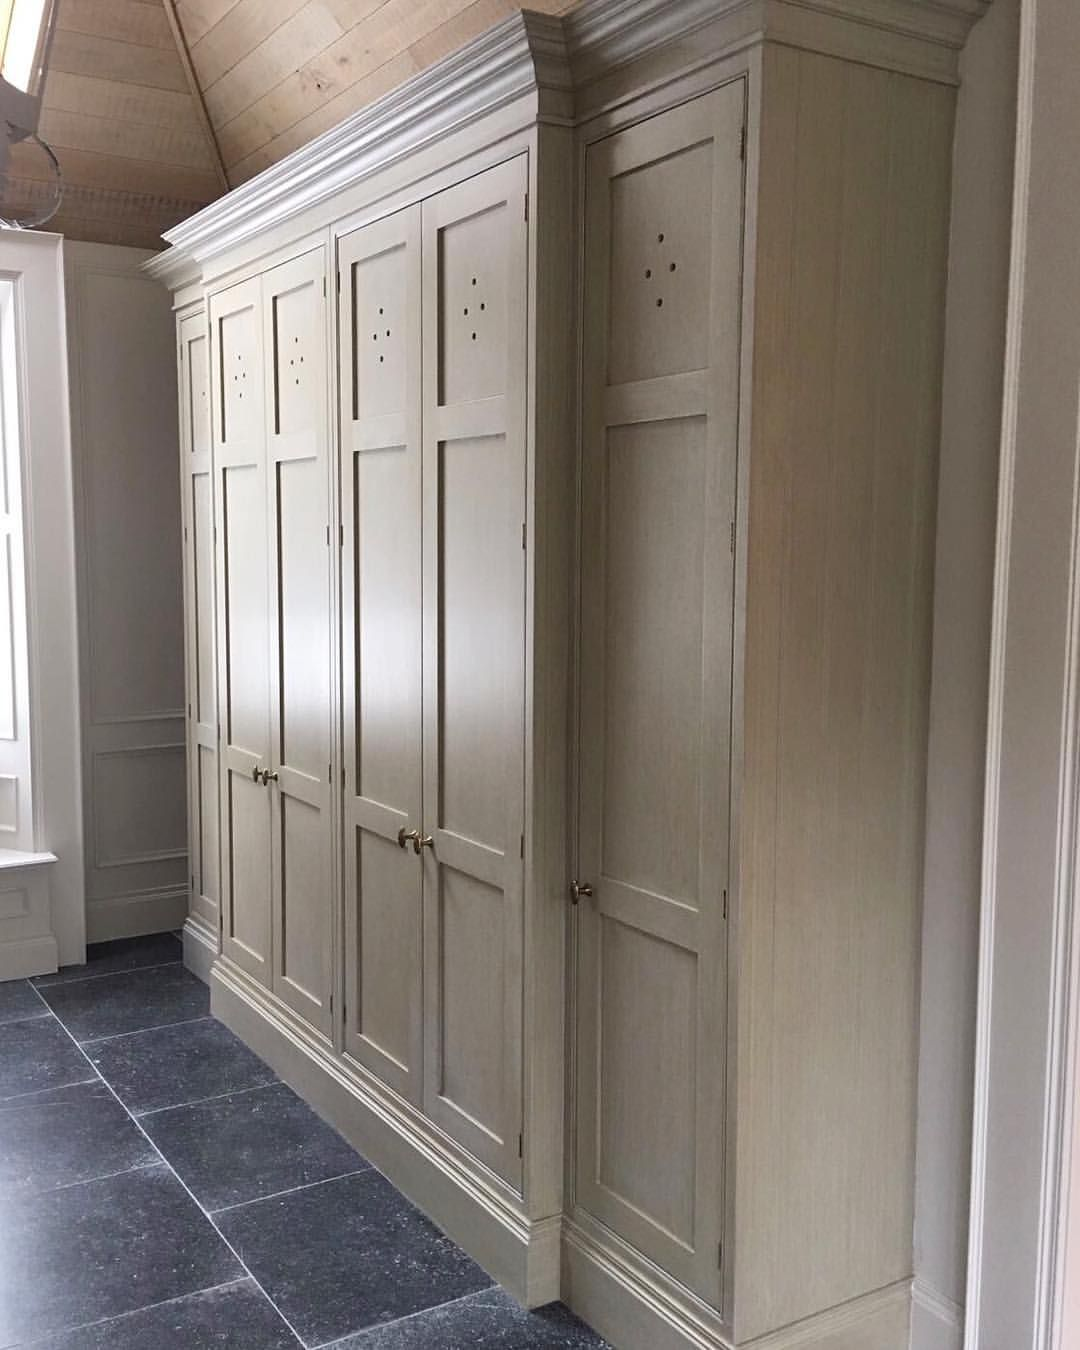 335 Likes 14 Comments Minnie Peters Minniepetersdesign On Instagram Suited And Booted New Entr Closet Remodel Bedroom Cupboard Designs Hall Cupboard